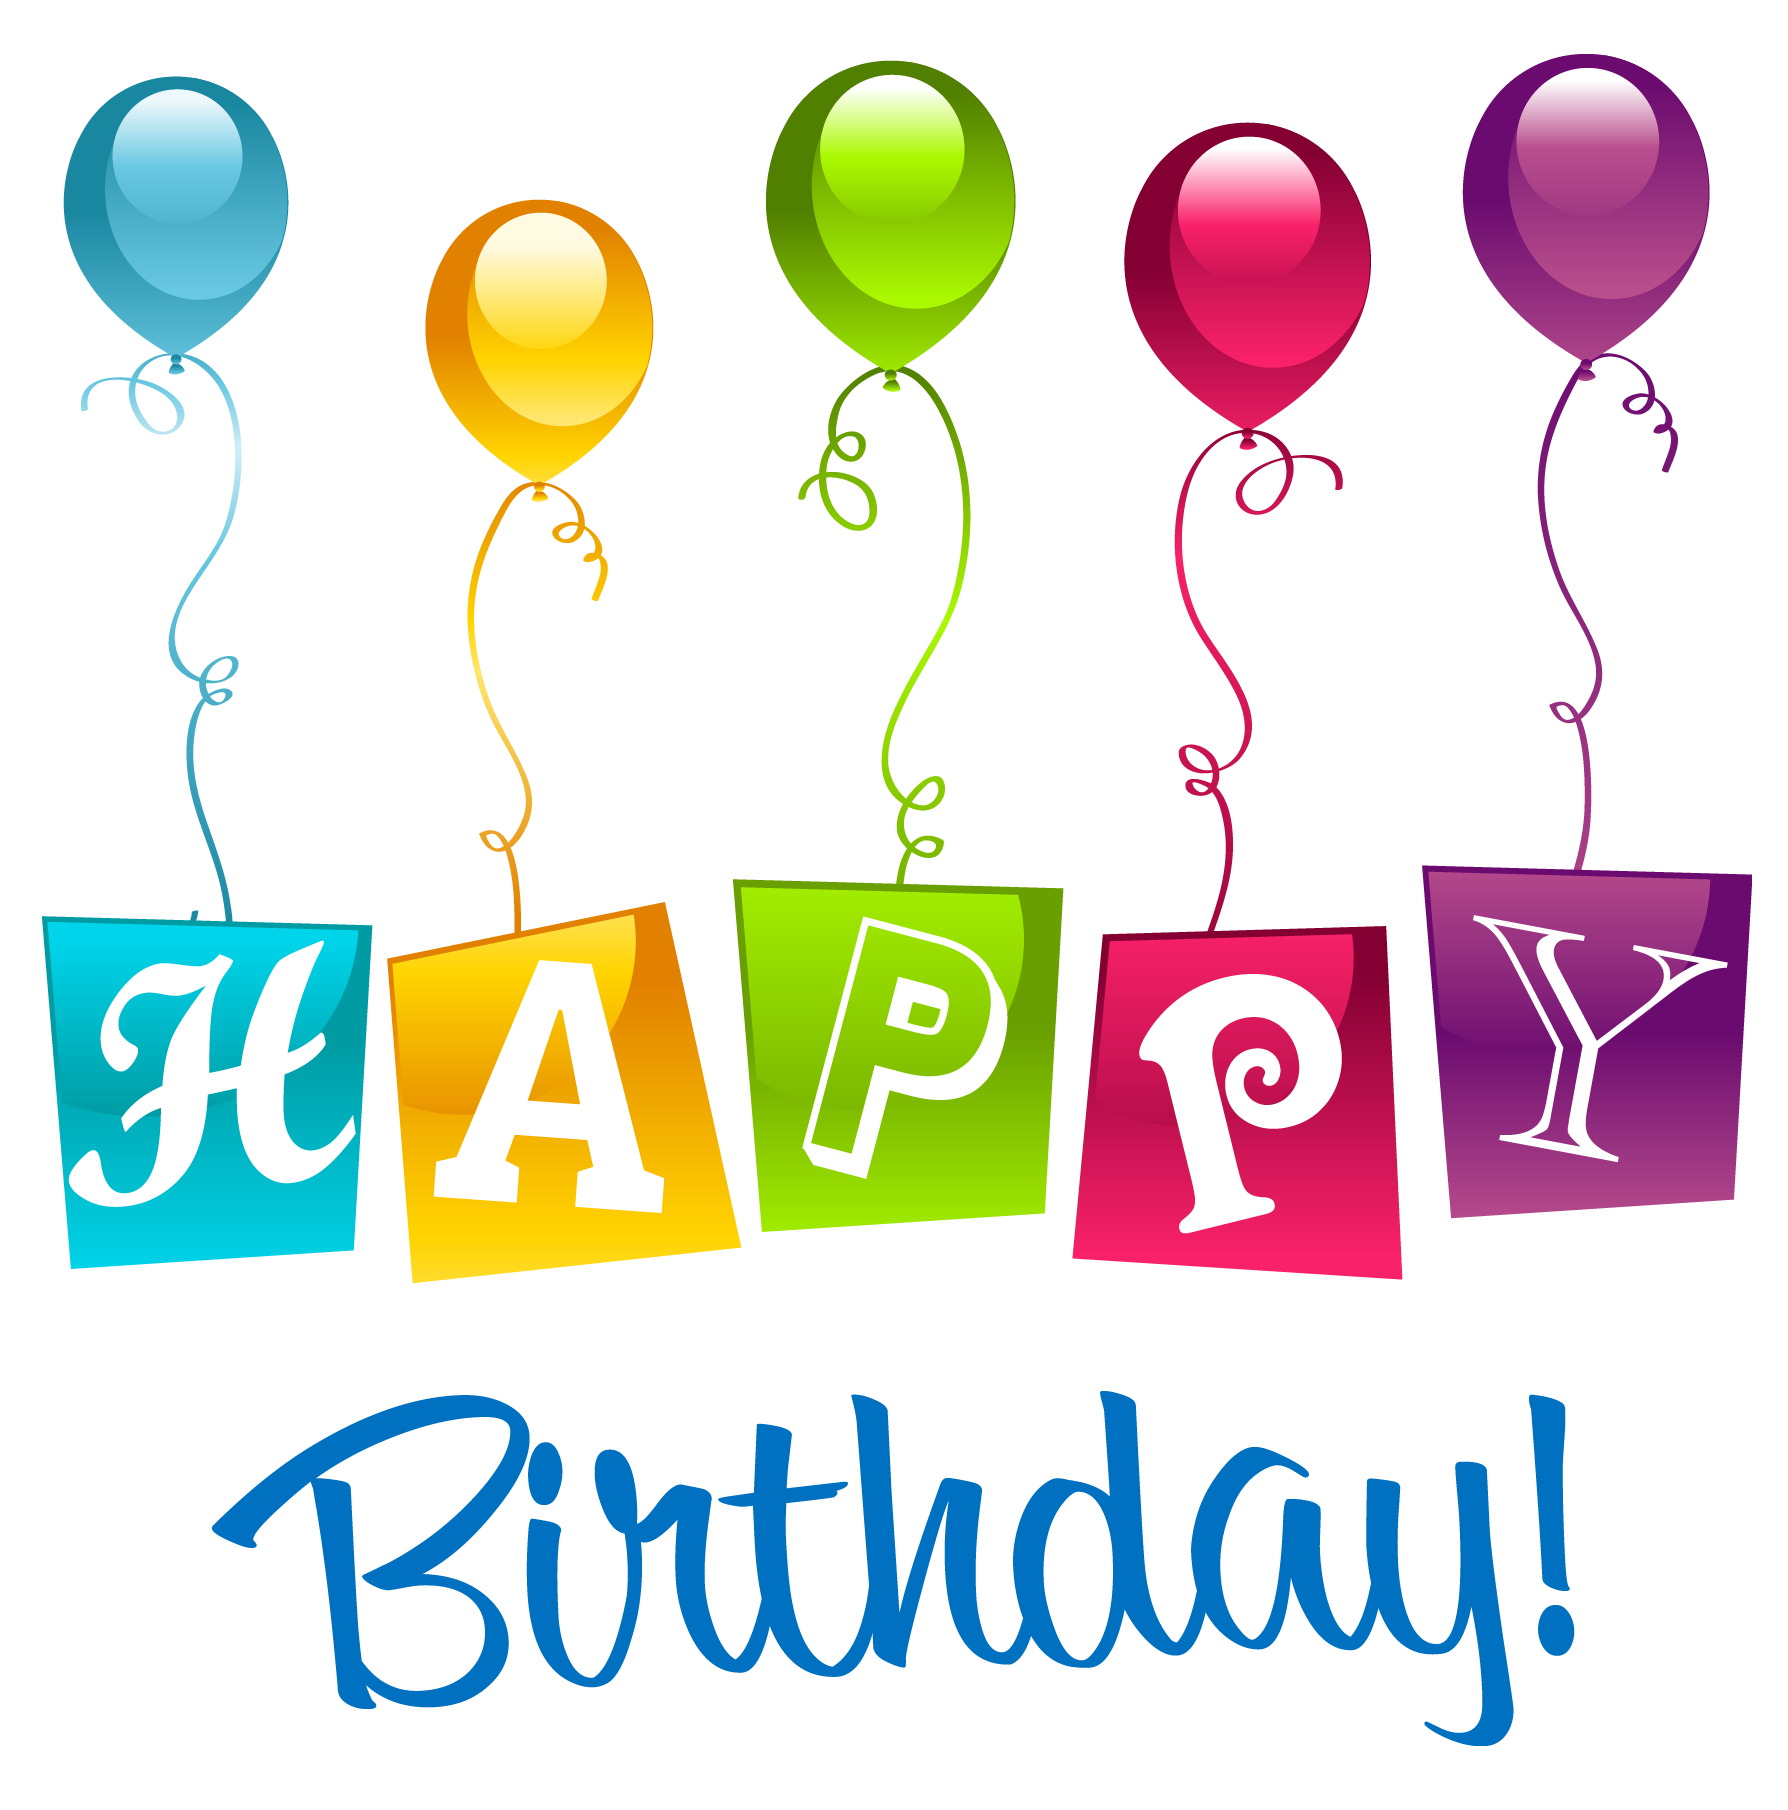 Happy png picture wishes. Surprise clipart birthday party supply